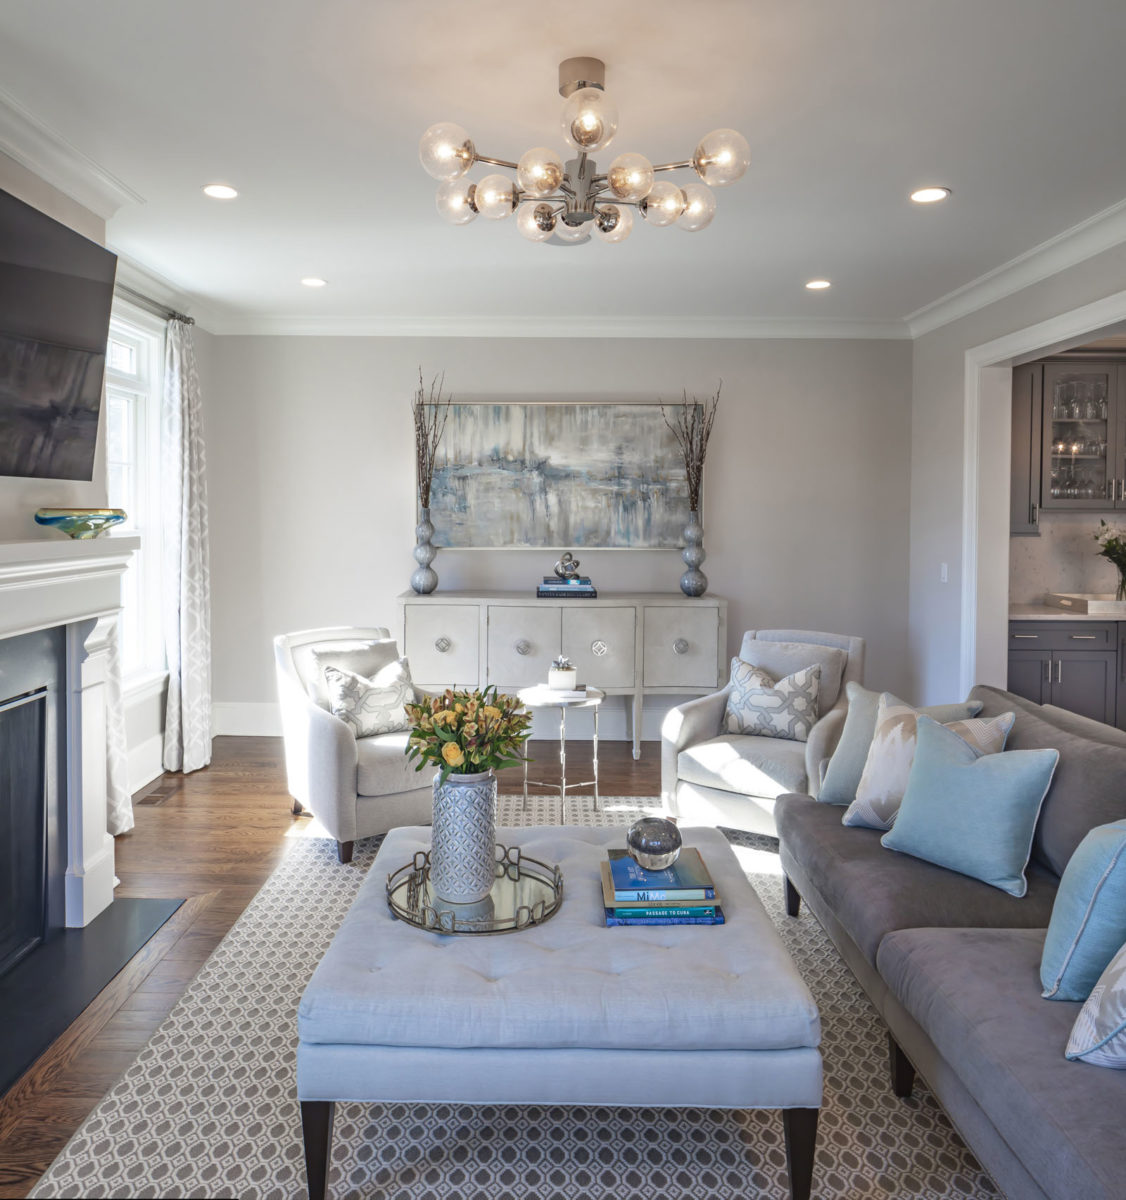 New York interior designers